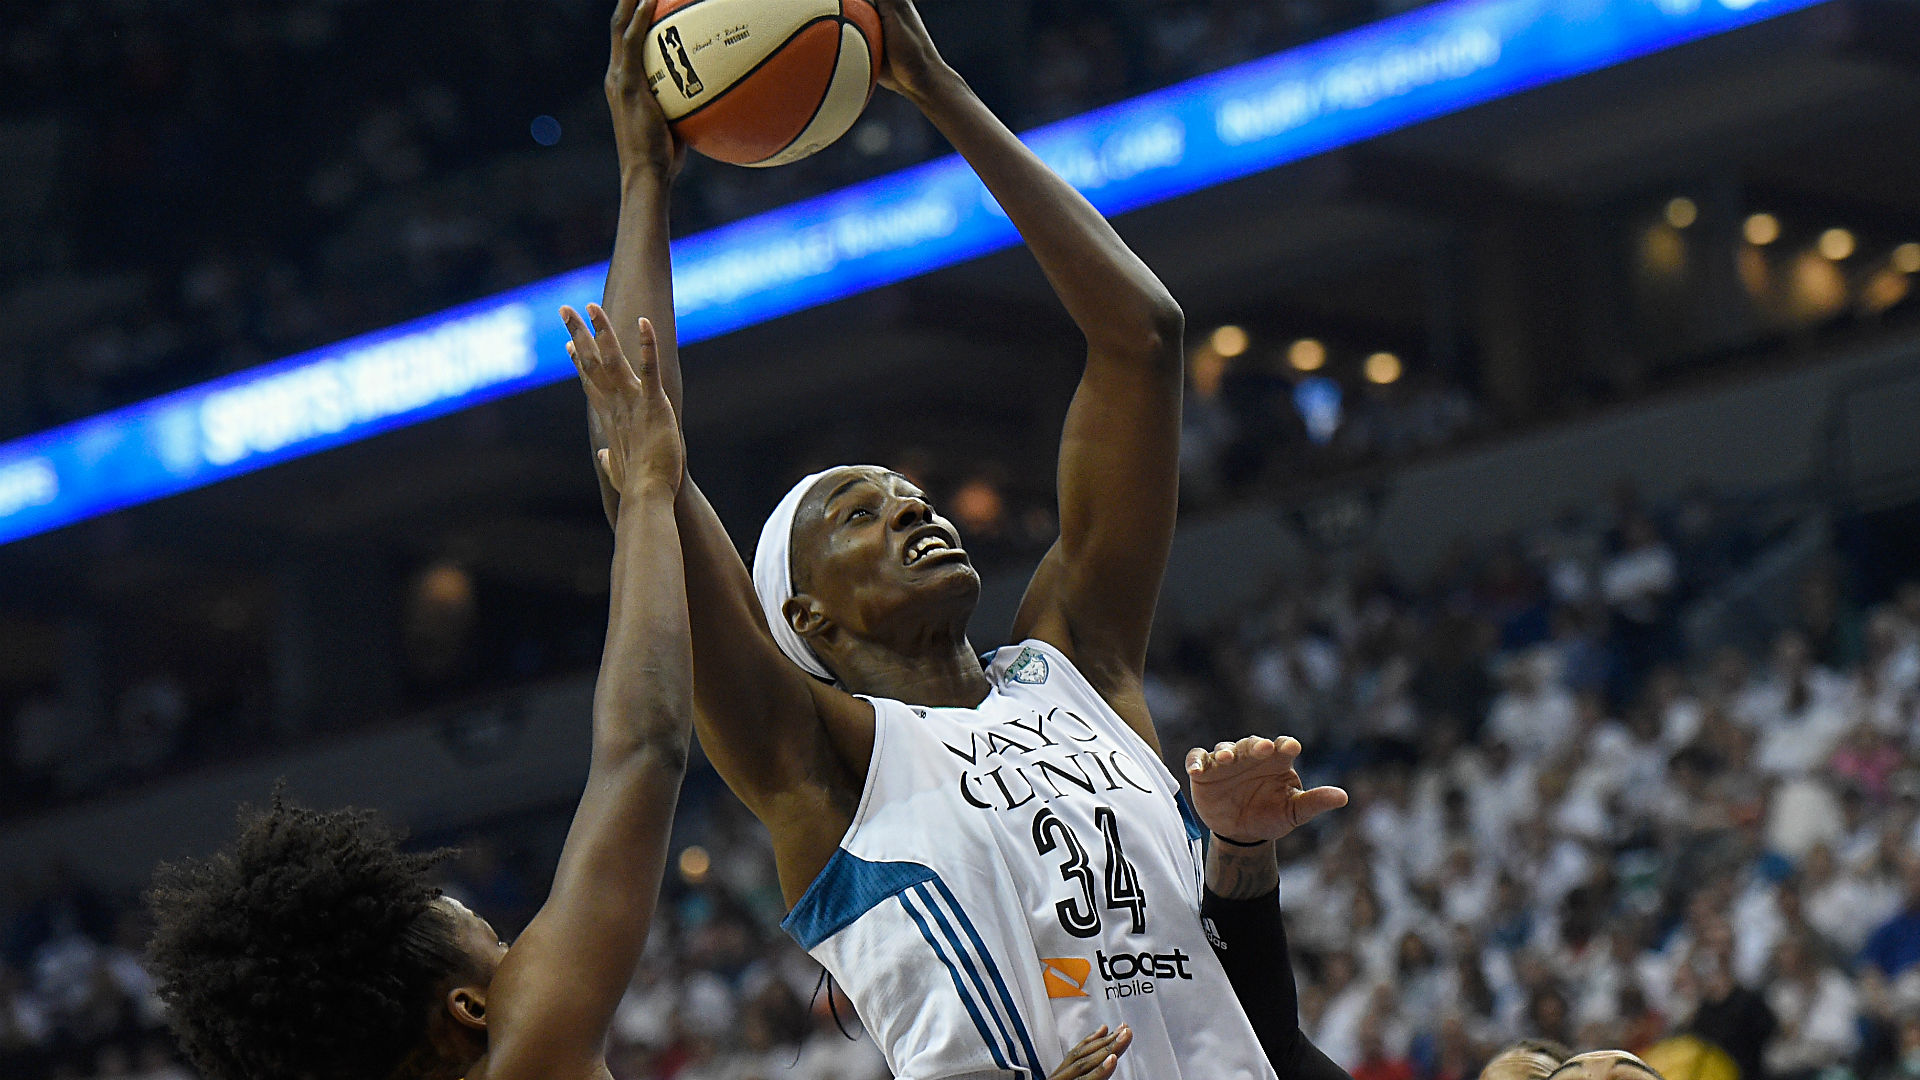 Fowles, Moore lift Lynx over Mystics, 93-83